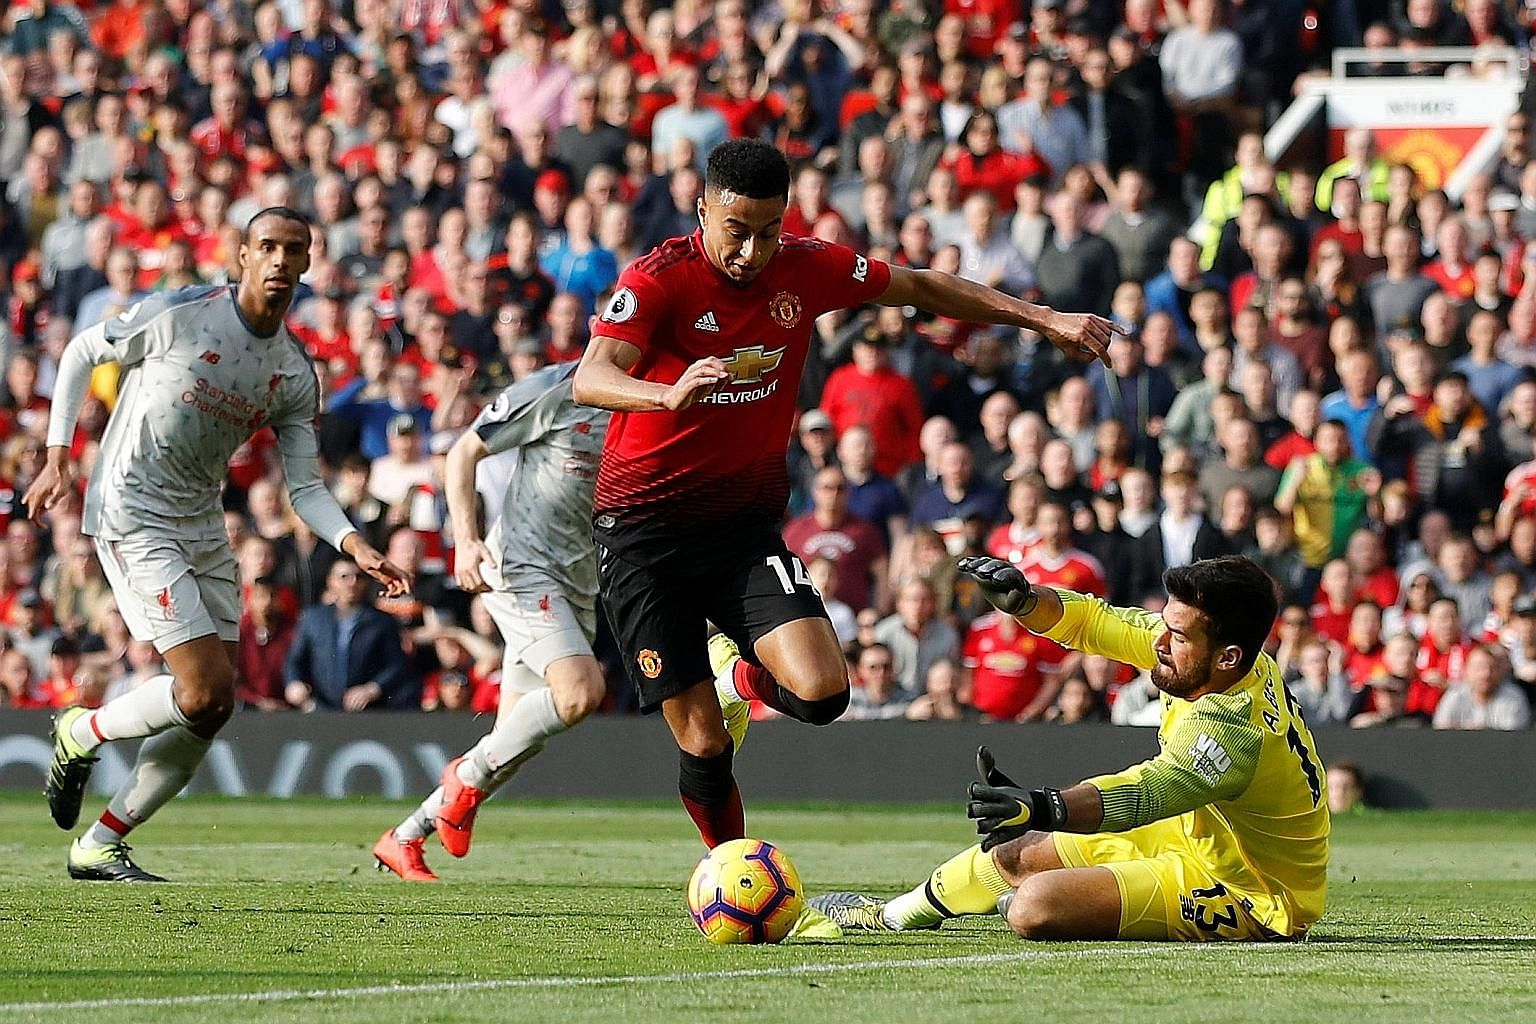 Jesse Lingard attempting to round Liverpool's Alisson, but was ultimately thwarted by the goalkeeper. It was Manchester United's clearest opportunity of note, as the two sides played out a goal-less stalemate yesterday.